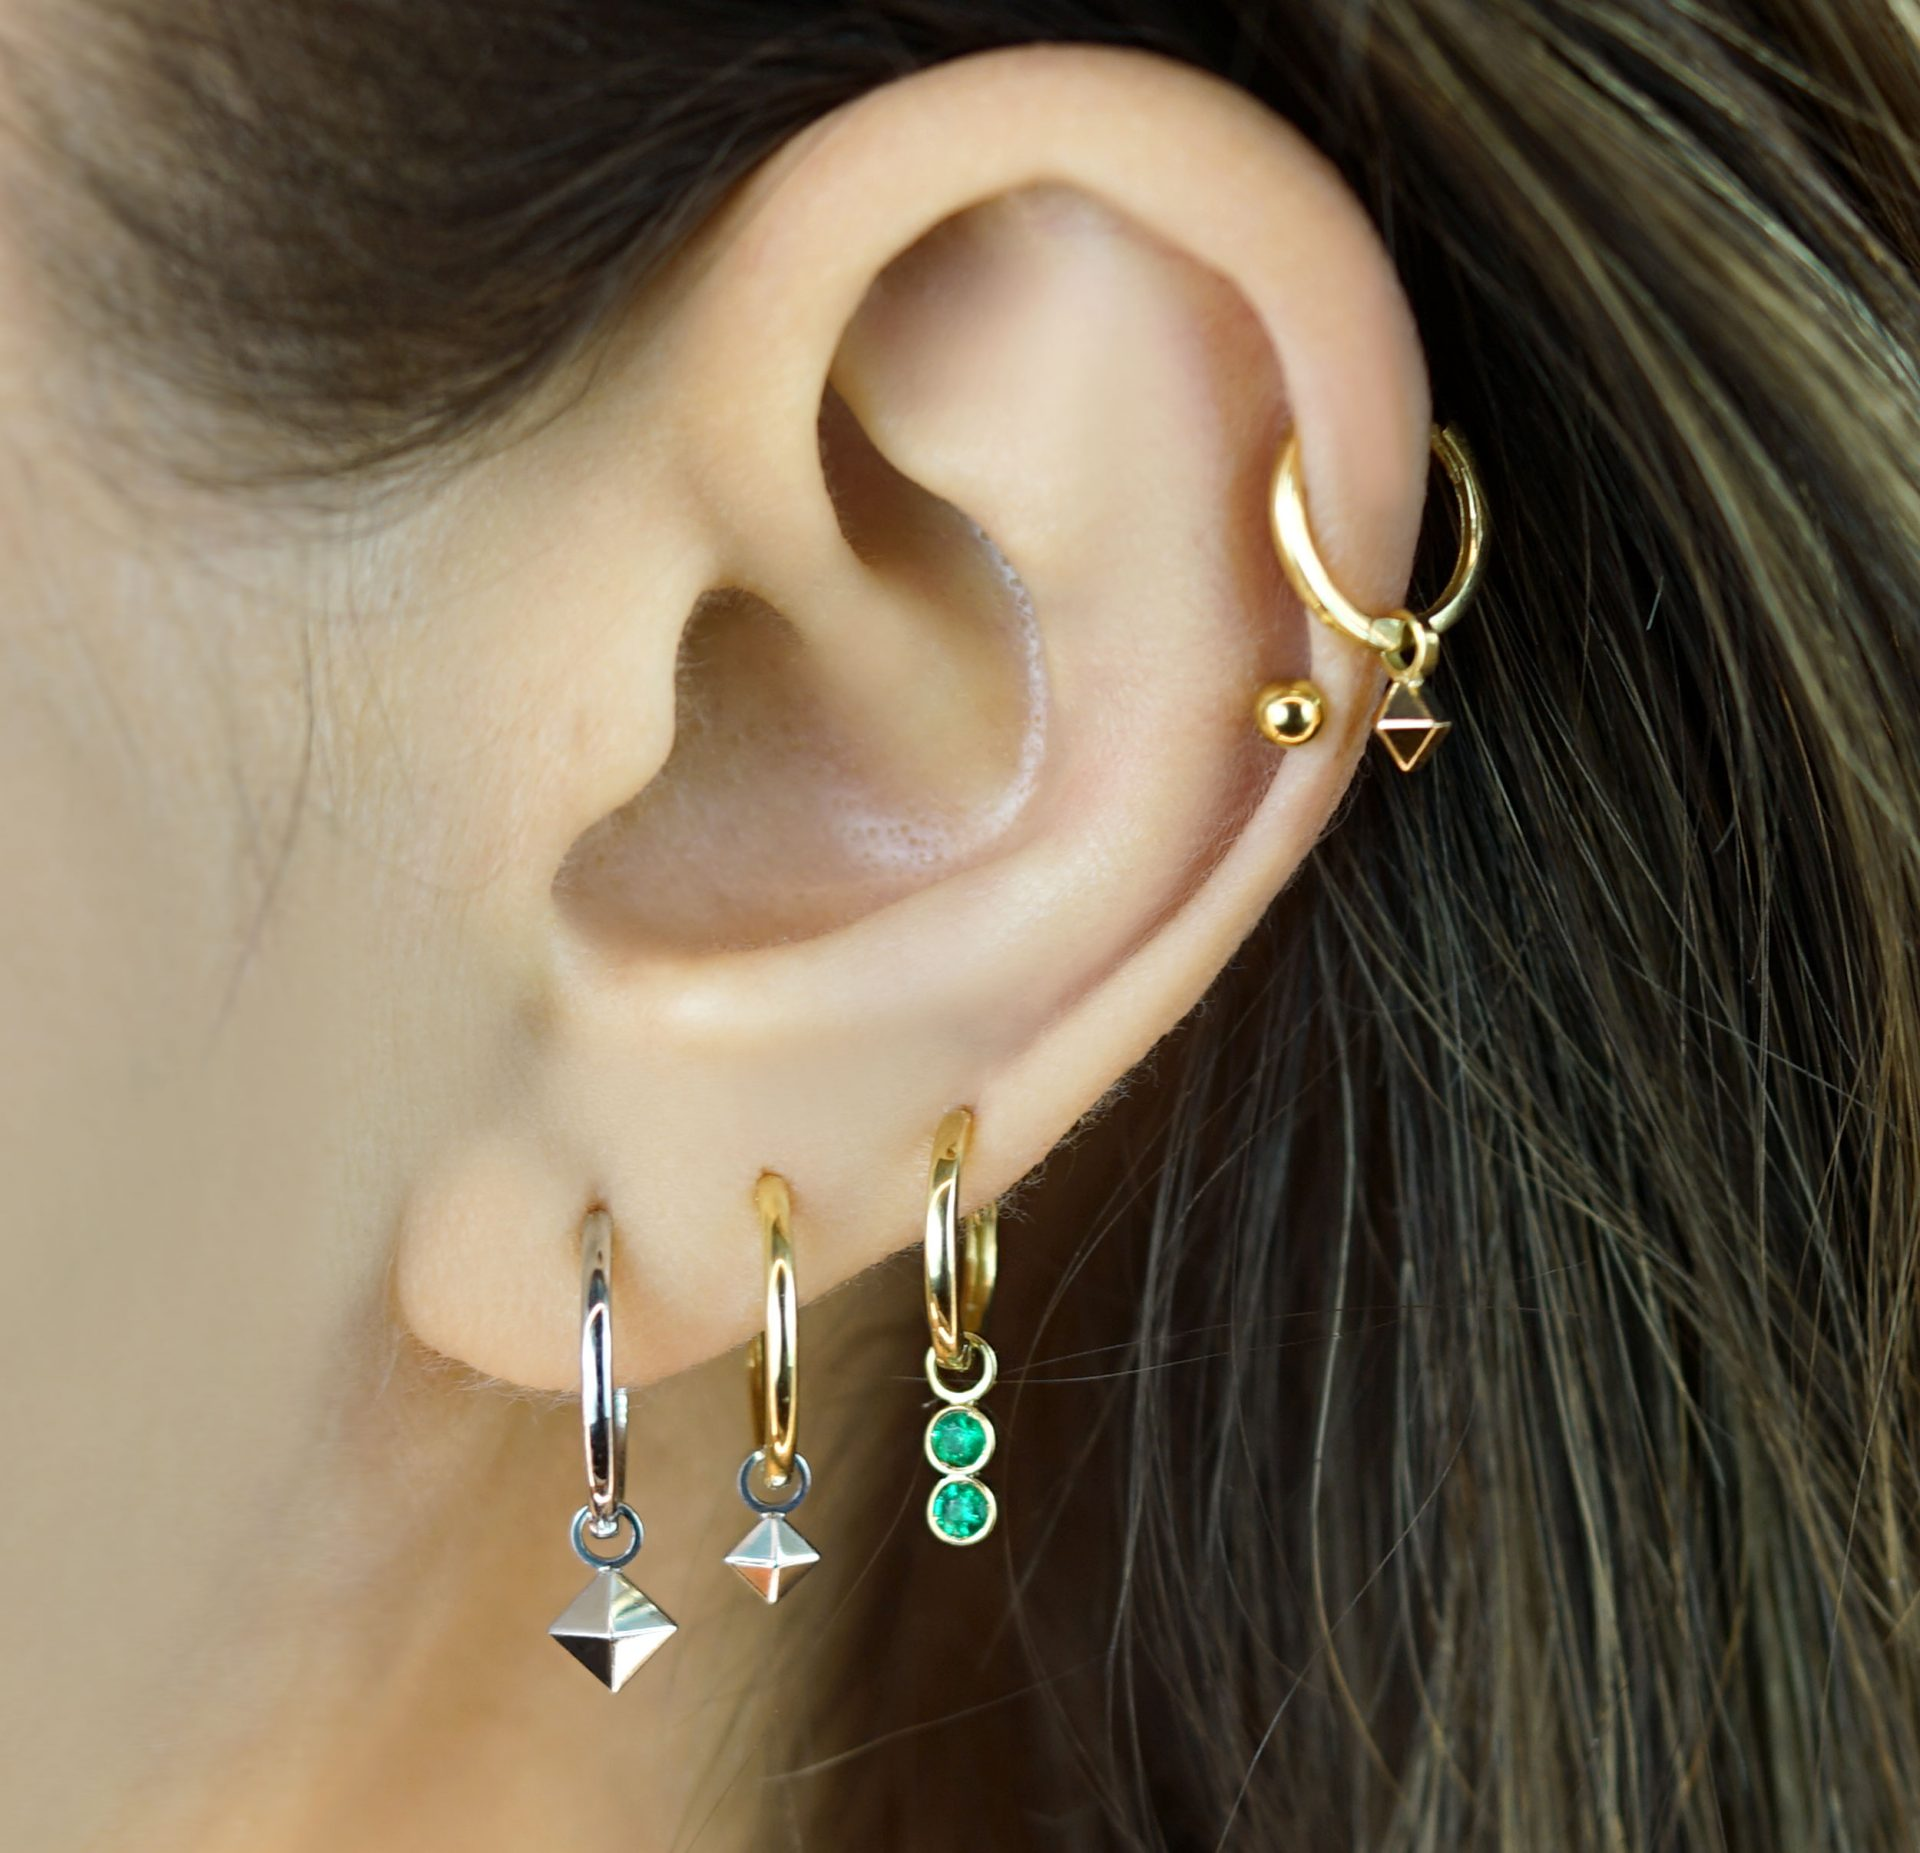 solid-18k-gold-pyramid-shape-charms-for-huggie-hoop-earrings-lena-cohen-luxury-piercing-jewellery-london (2)